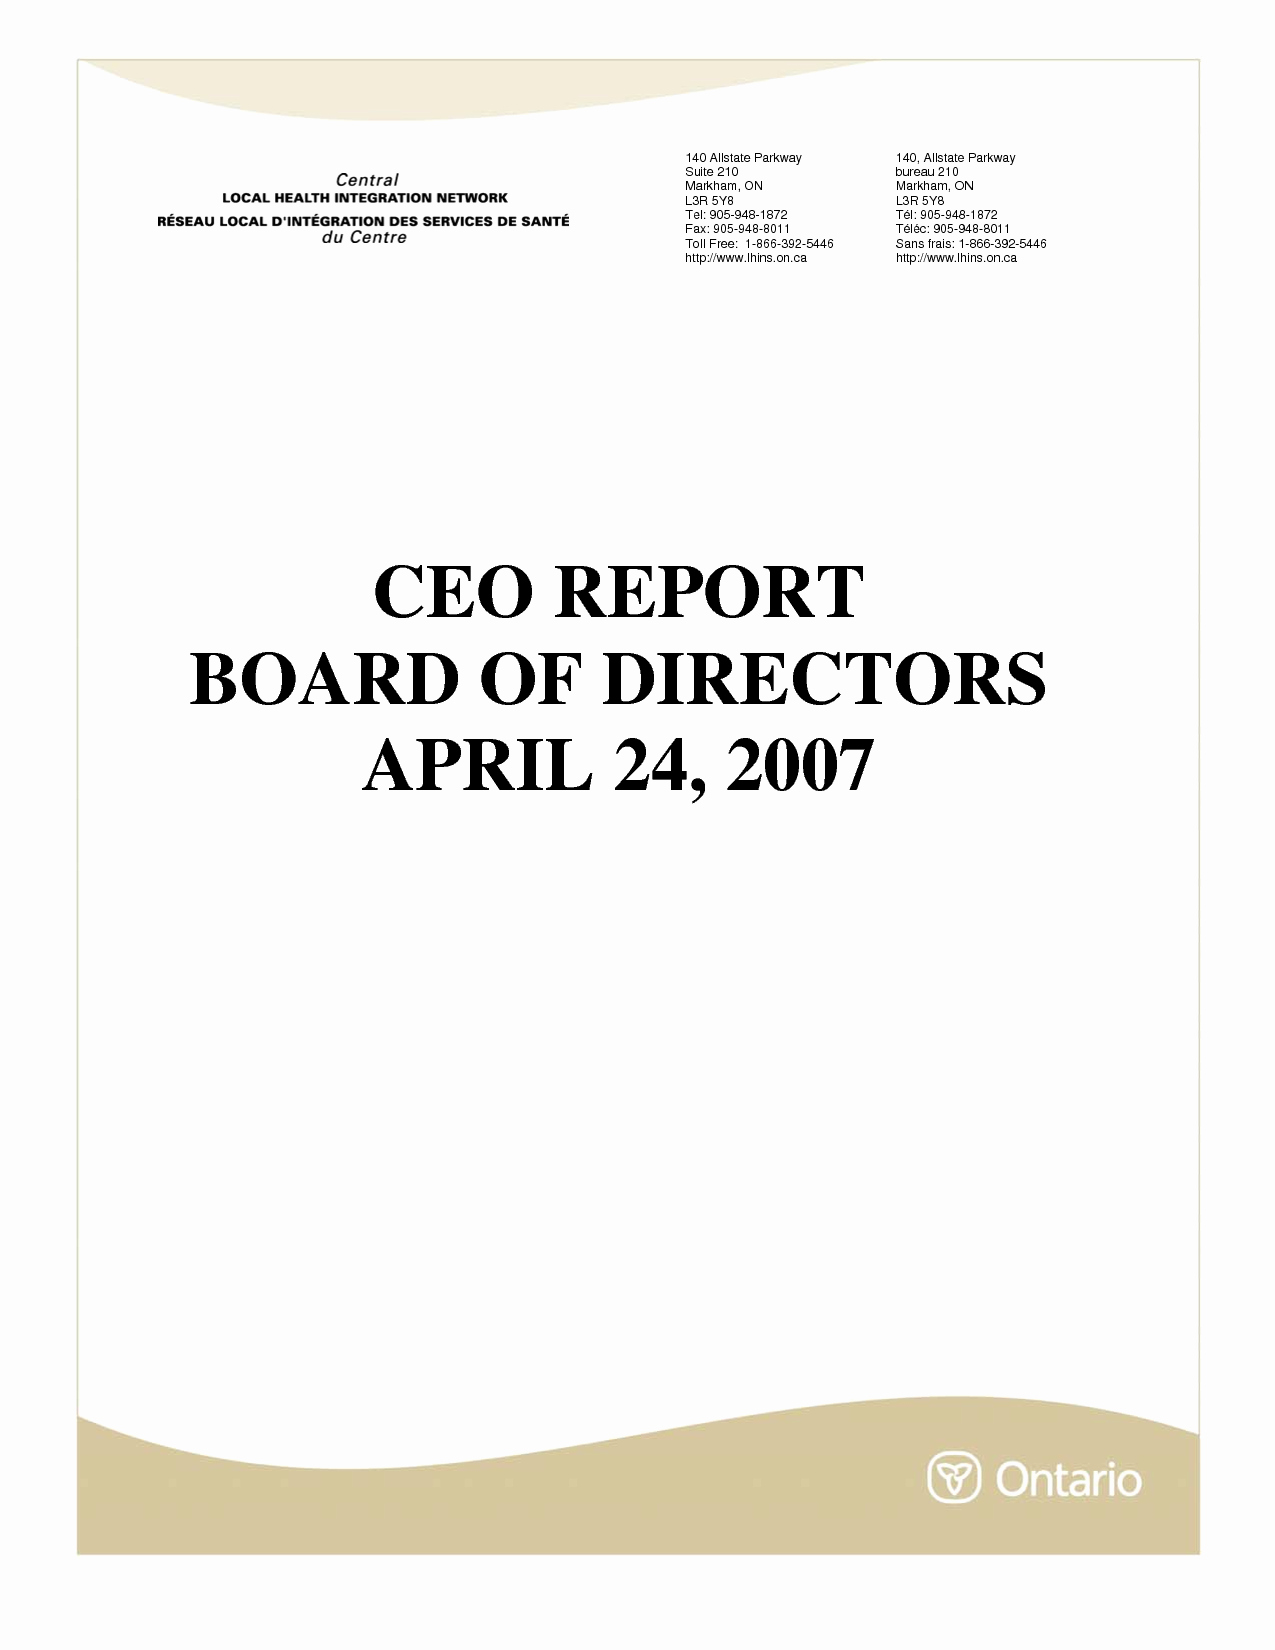 Board Of Directors Report Template Lovely Best S Of to the Ceo Reports Sample Annual Report